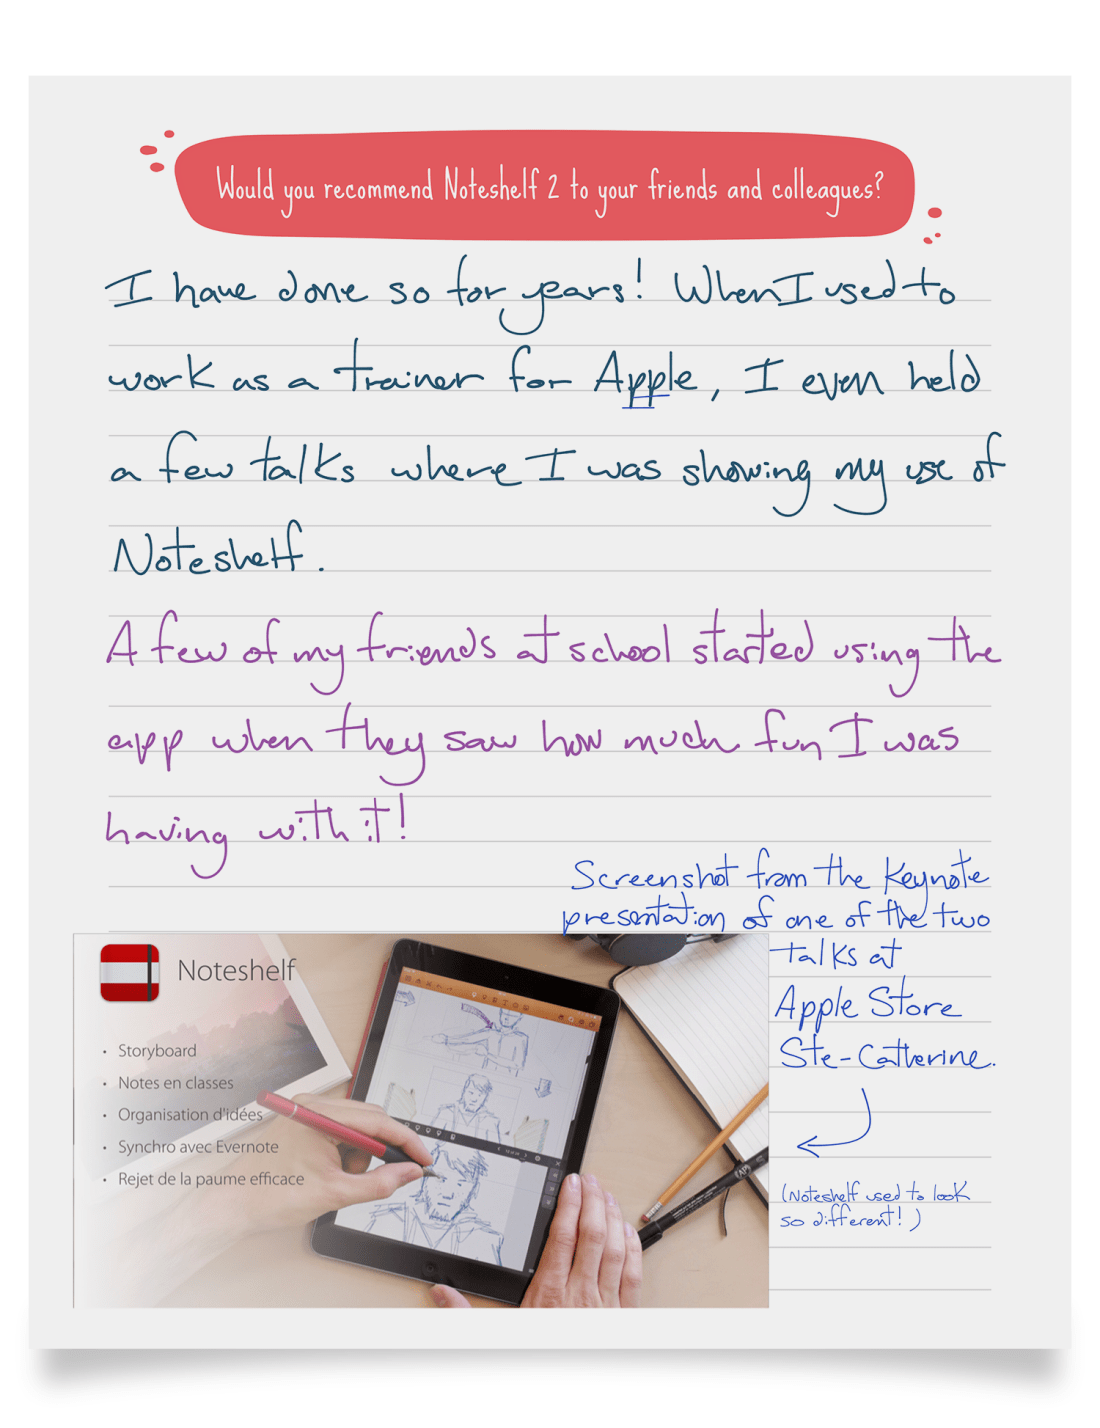 Alex Dornier recommends Noteshelf